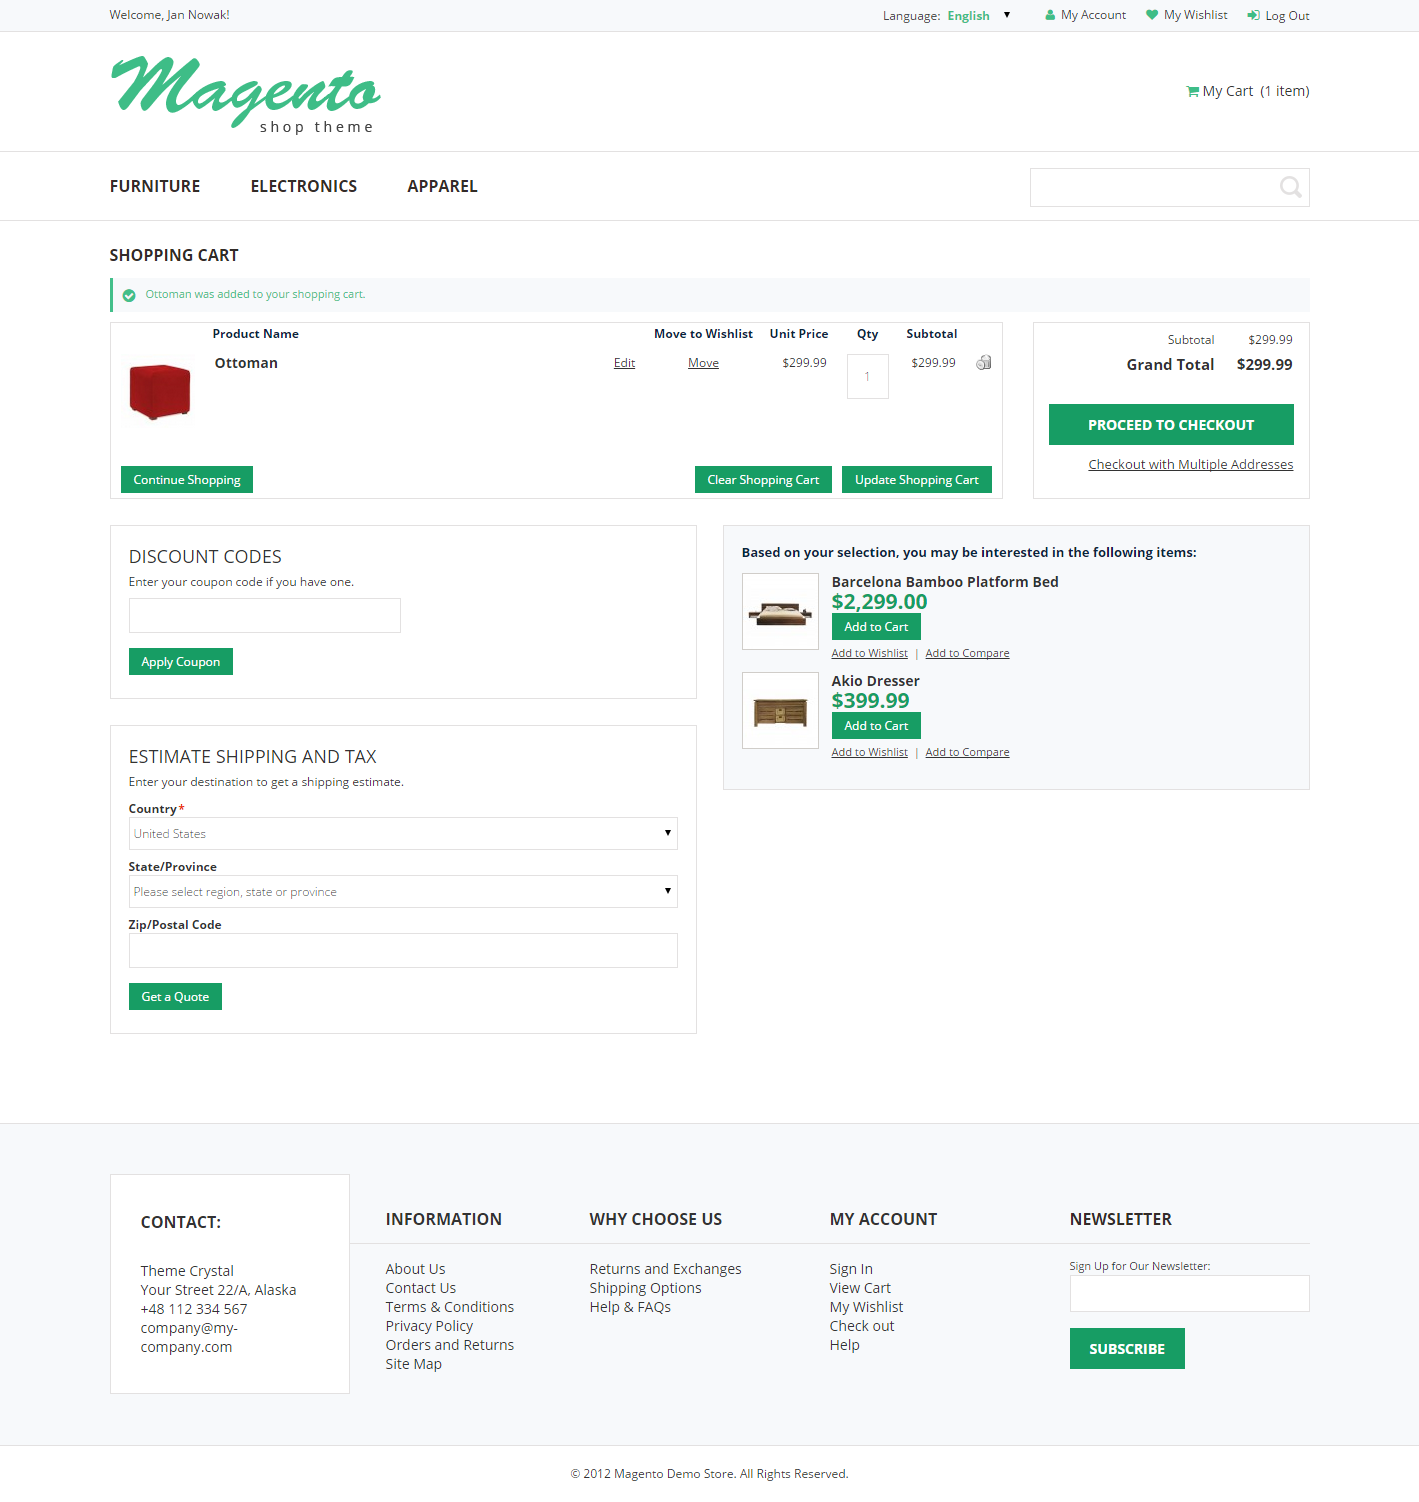 Crystal - Theme For Magento: Screen 5